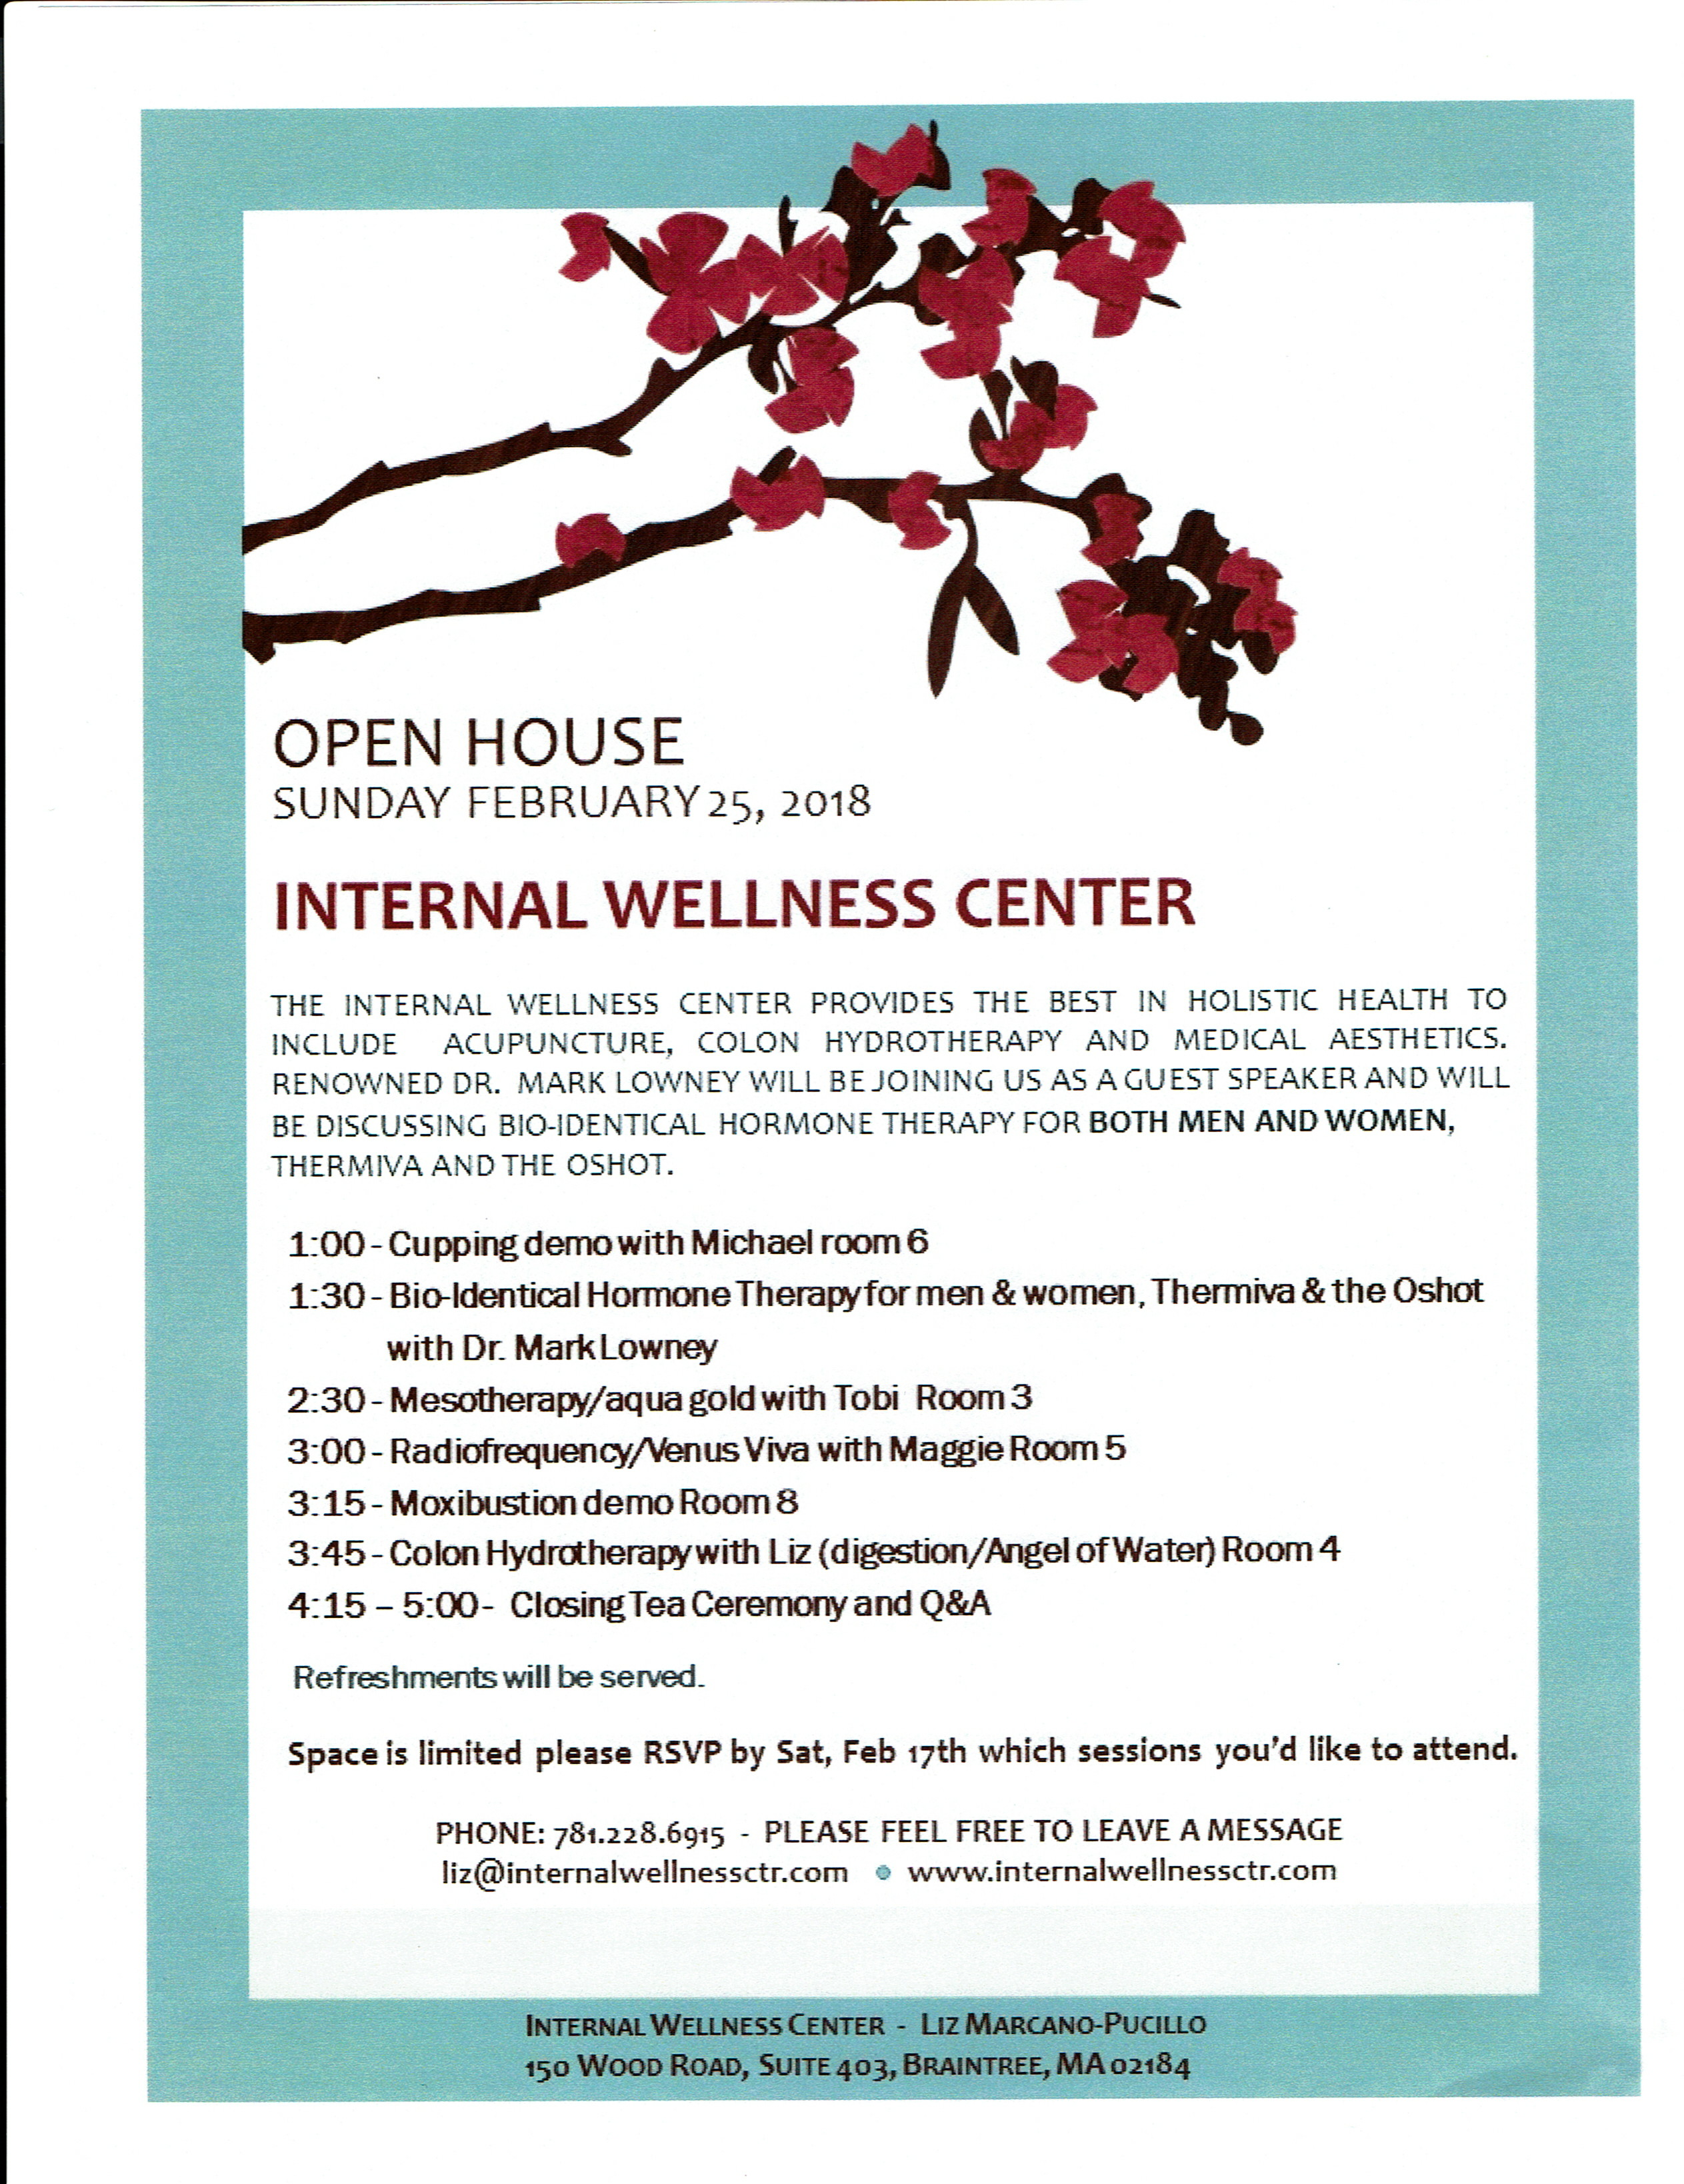 Open House 2/25/18 in Braintree, MA at our Clinic. Come Celebrate the Year of the Dog! @ Life Qi Holistic Medicine